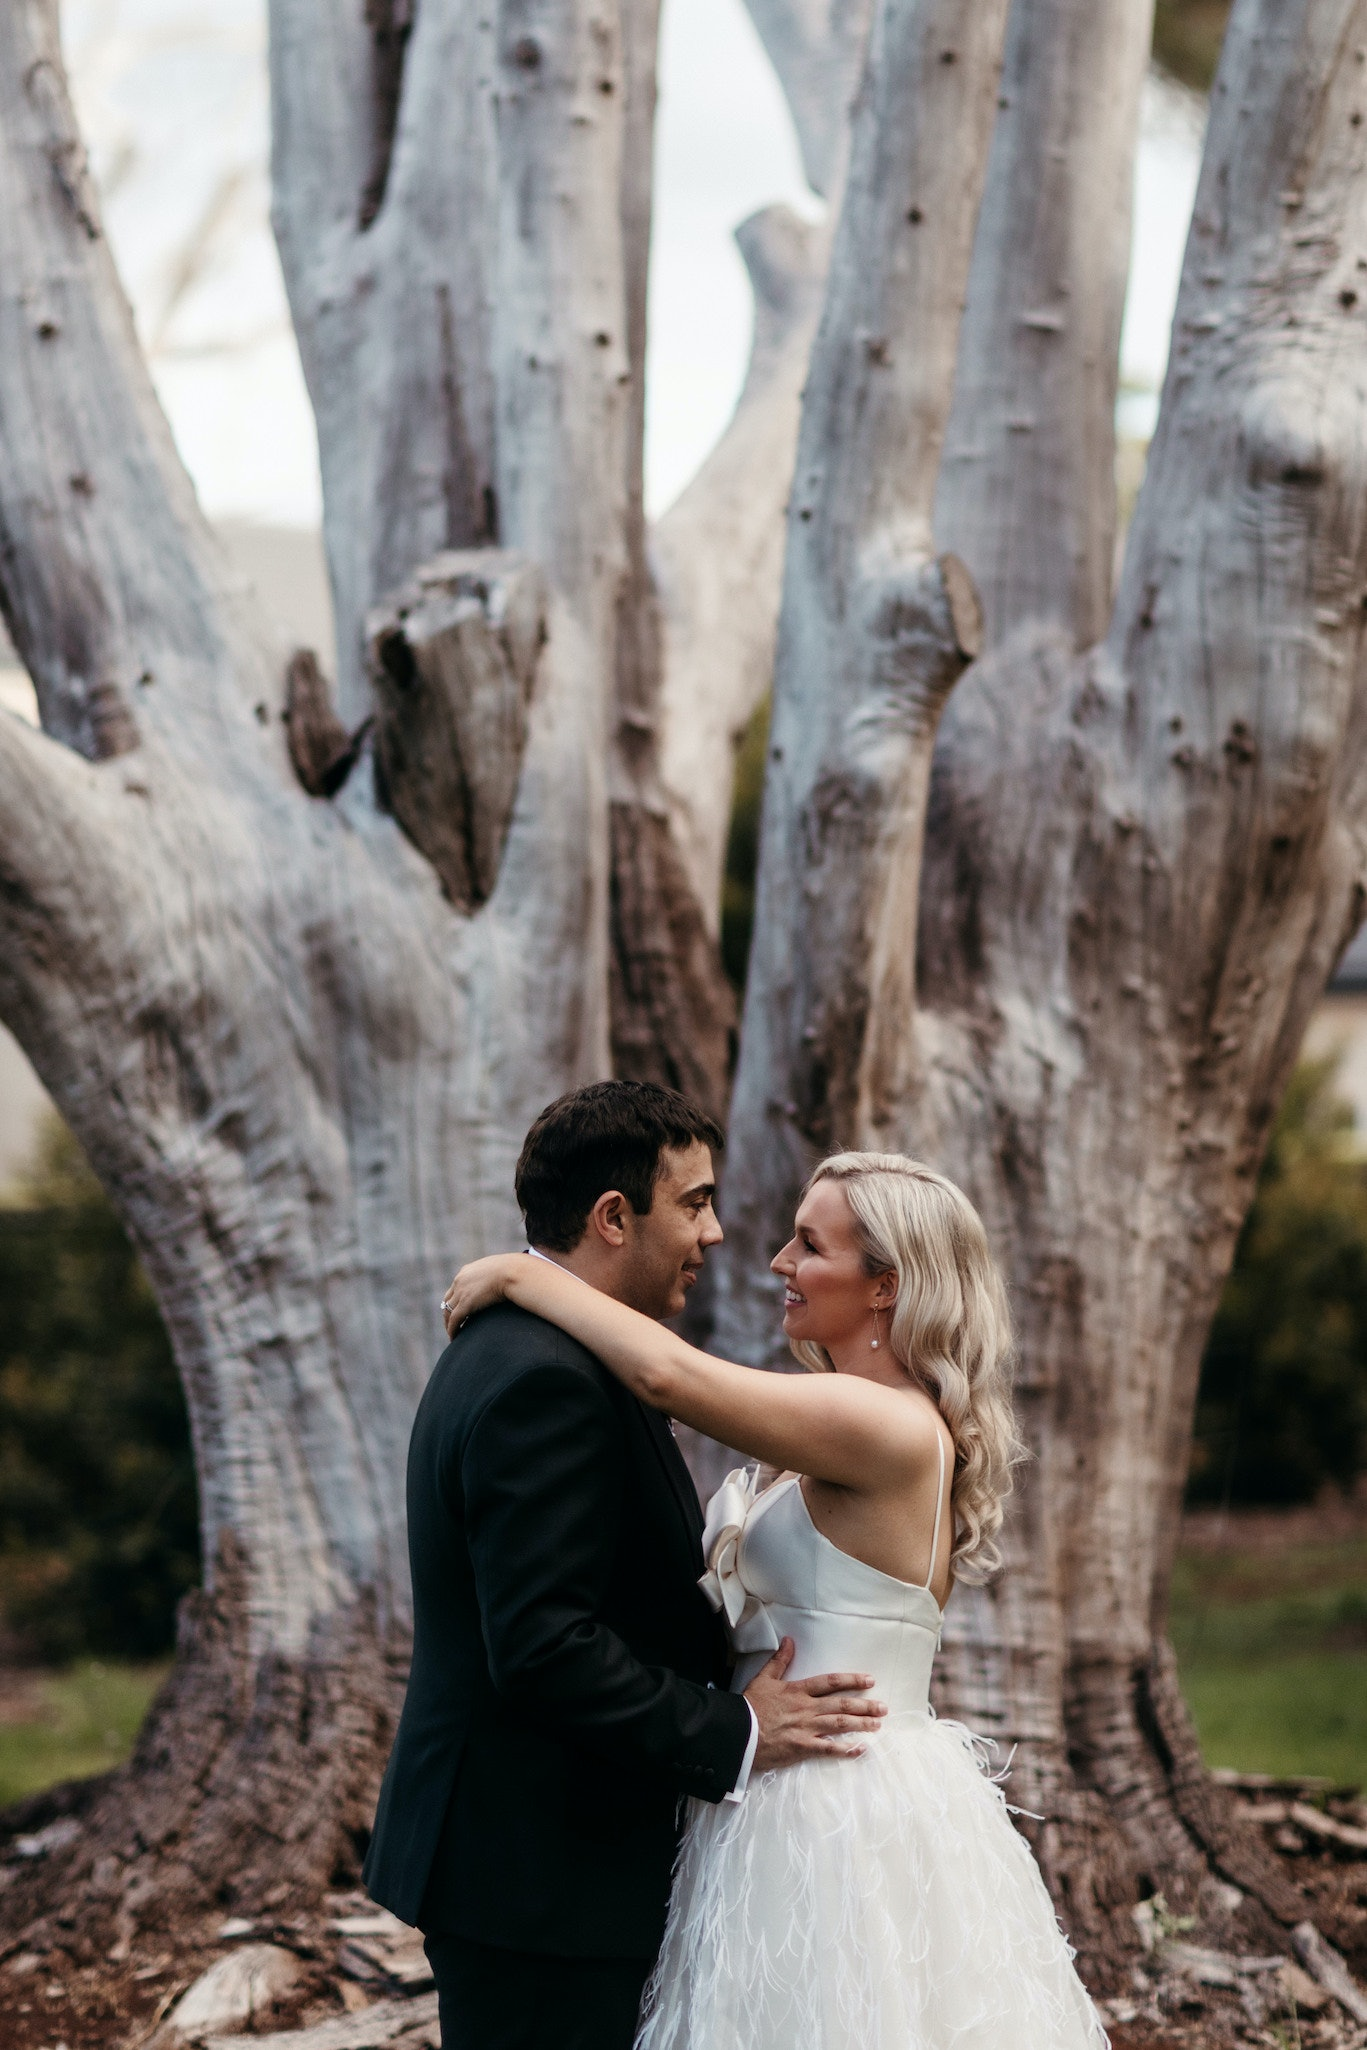 Bride and groom standing in front of tree